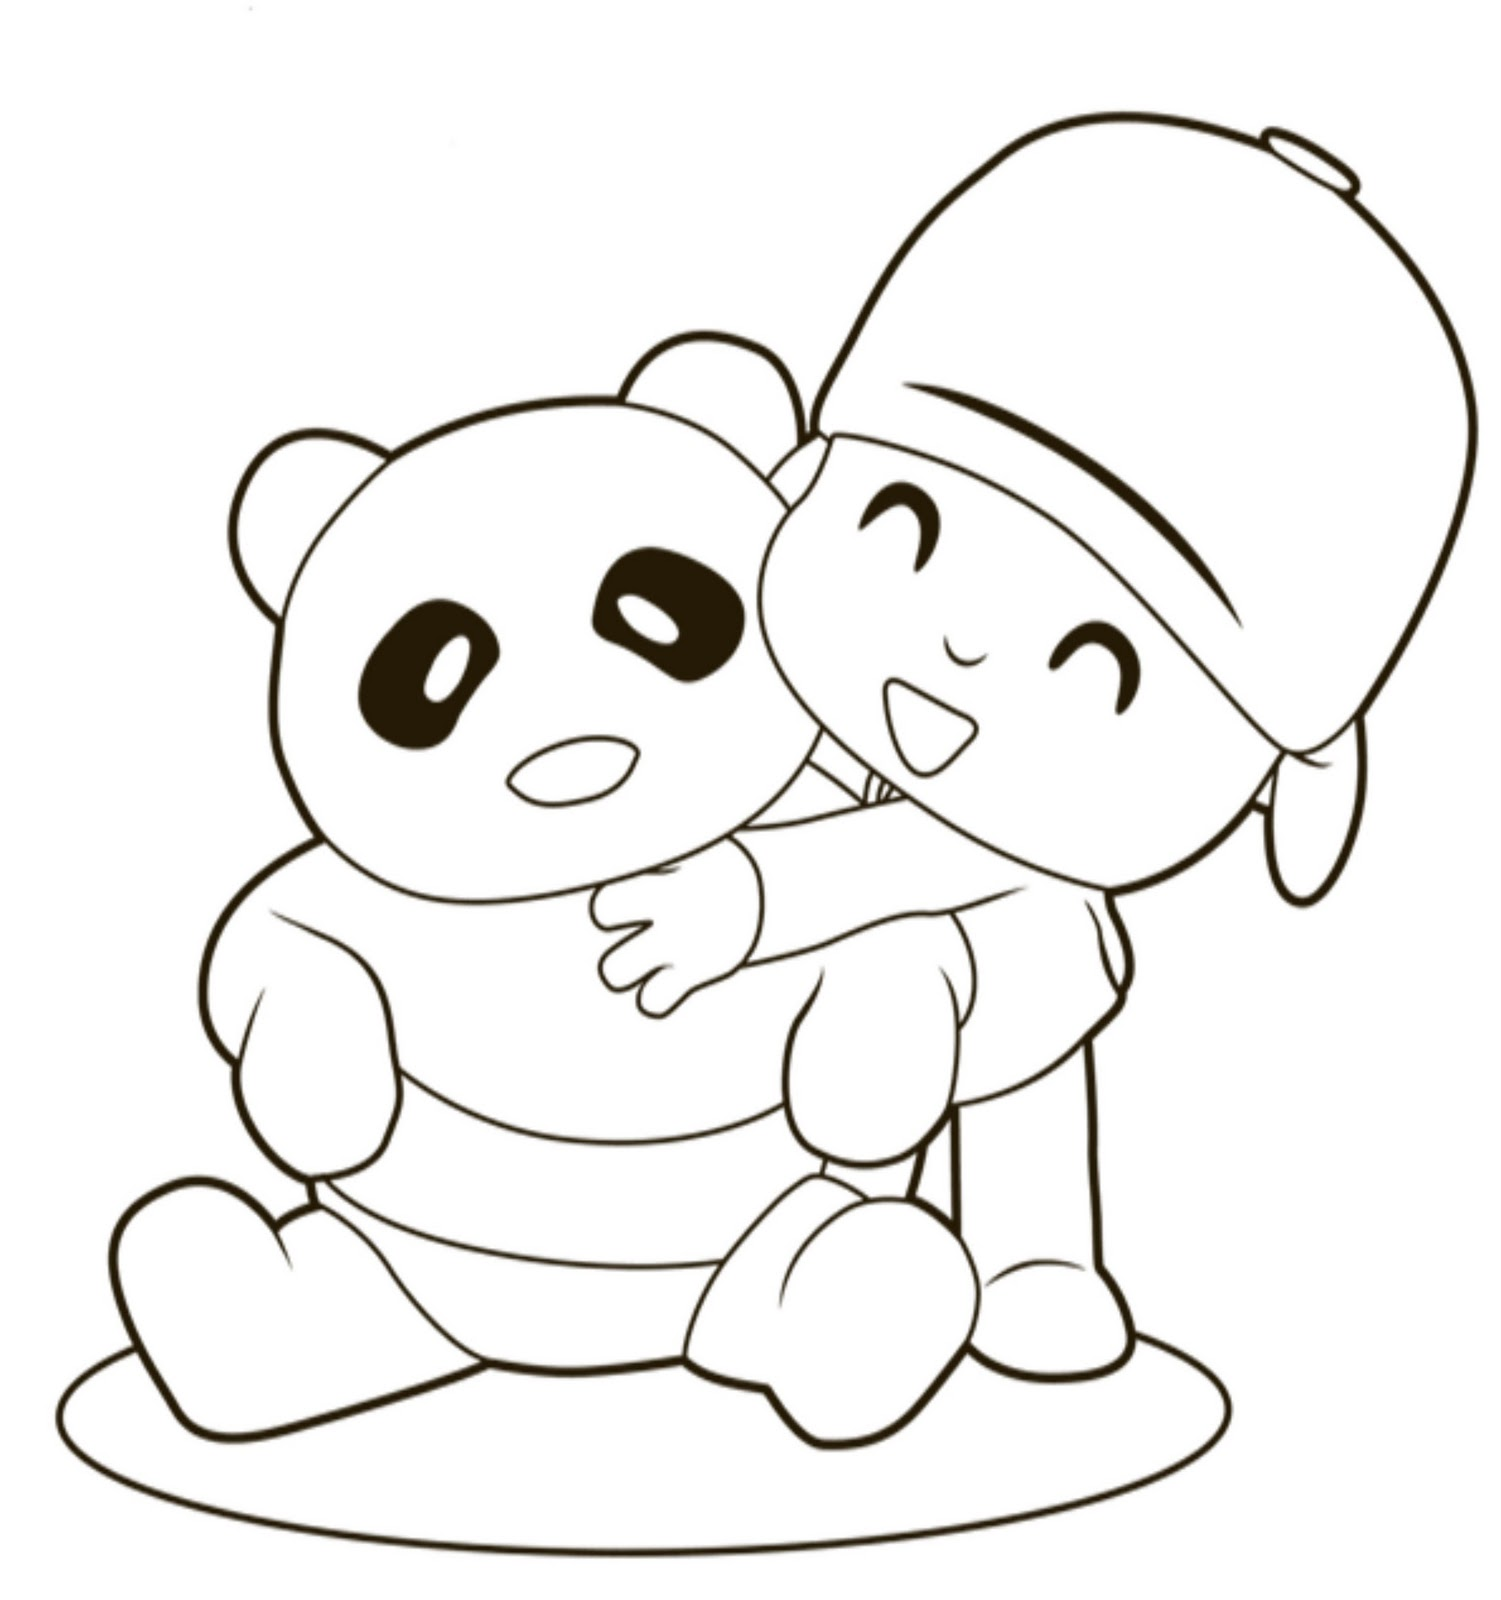 Free printable pocoyo coloring pages for kids for Free color page printables